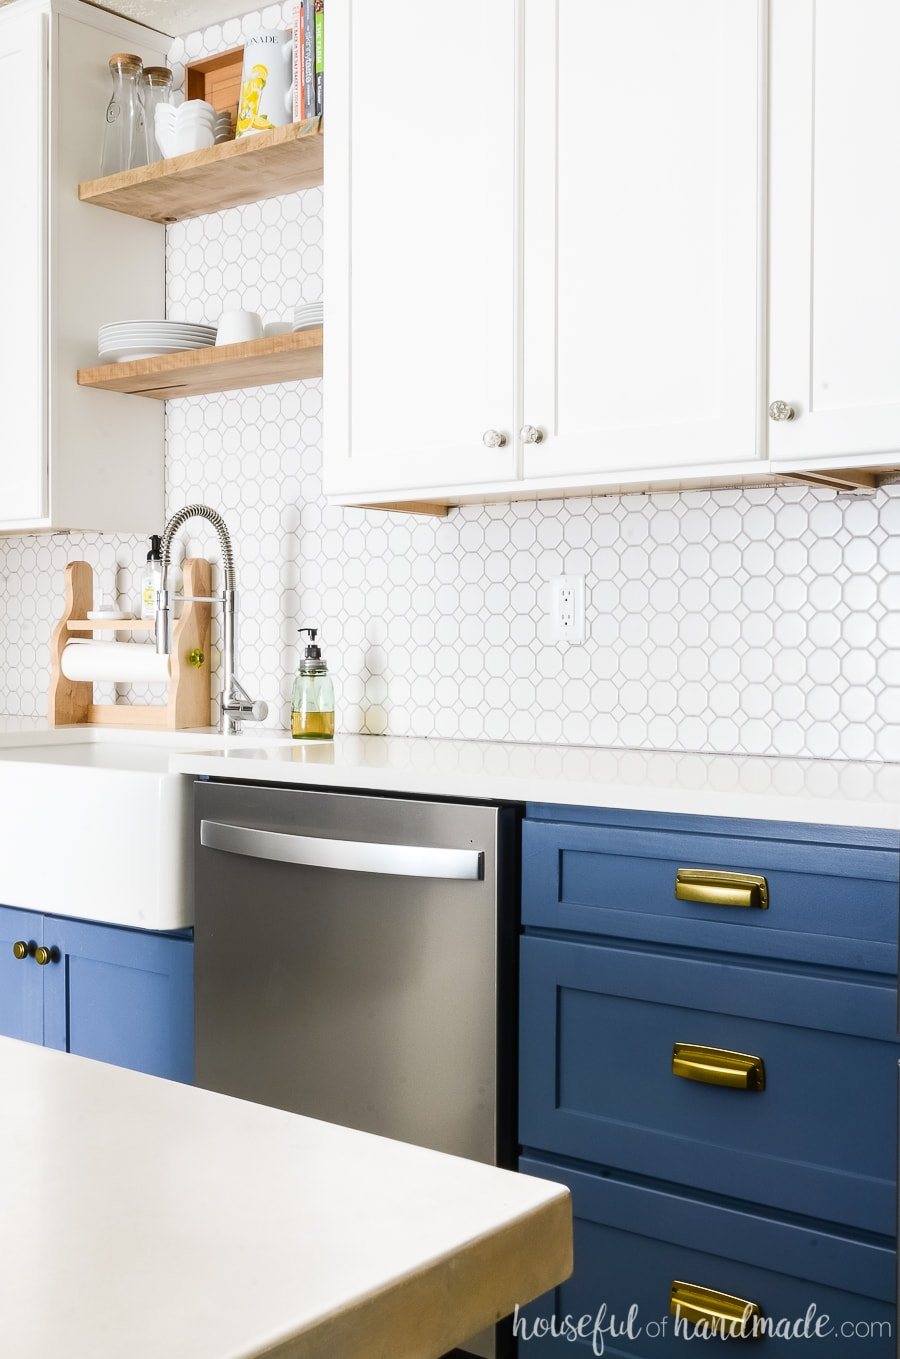 Navy base cabinets with white quartz counter top and white upper cabinets.